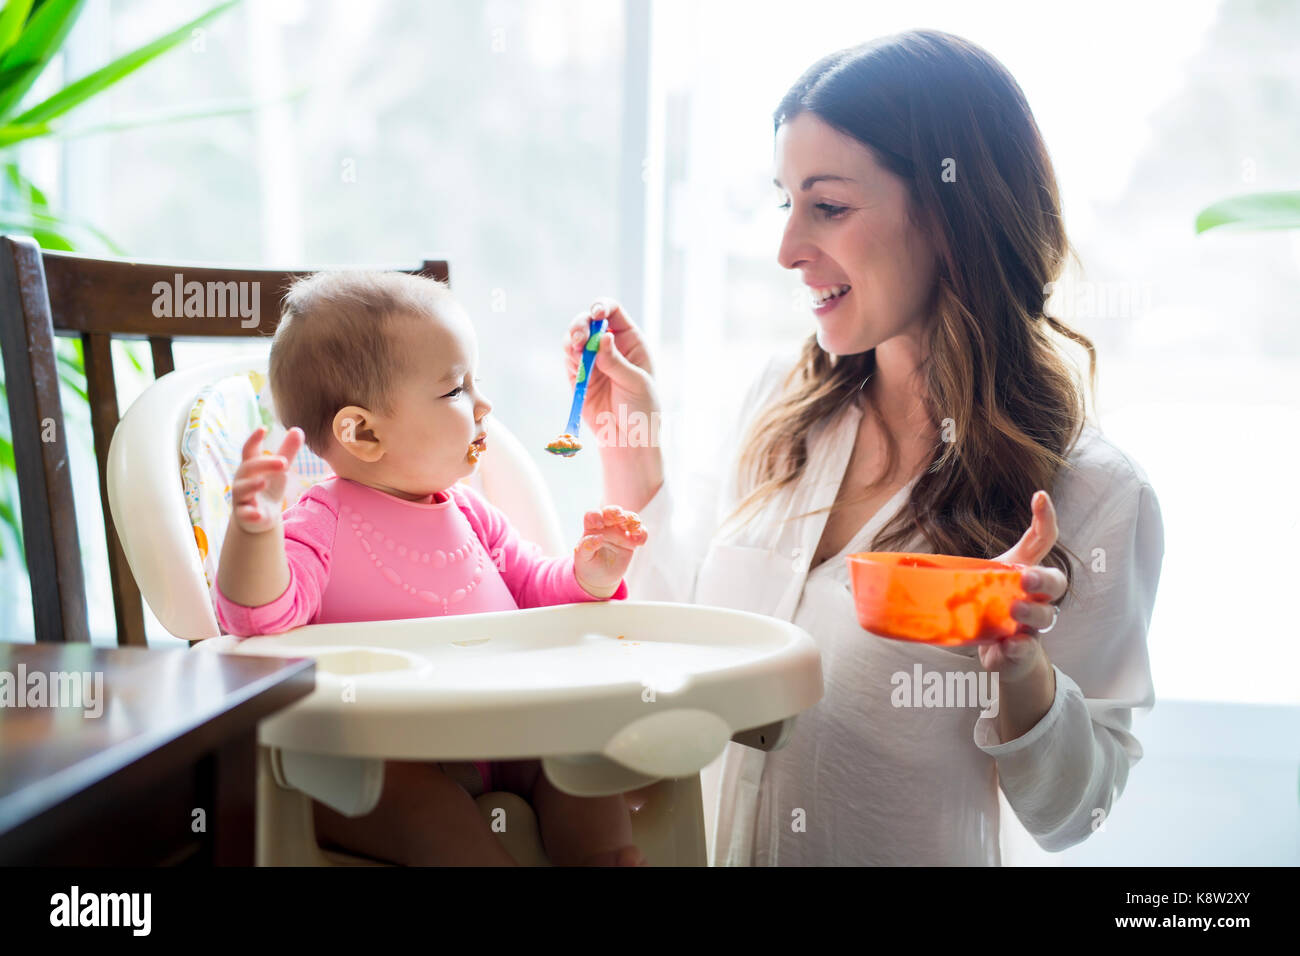 Mother feeding baby with spoon - Stock Image